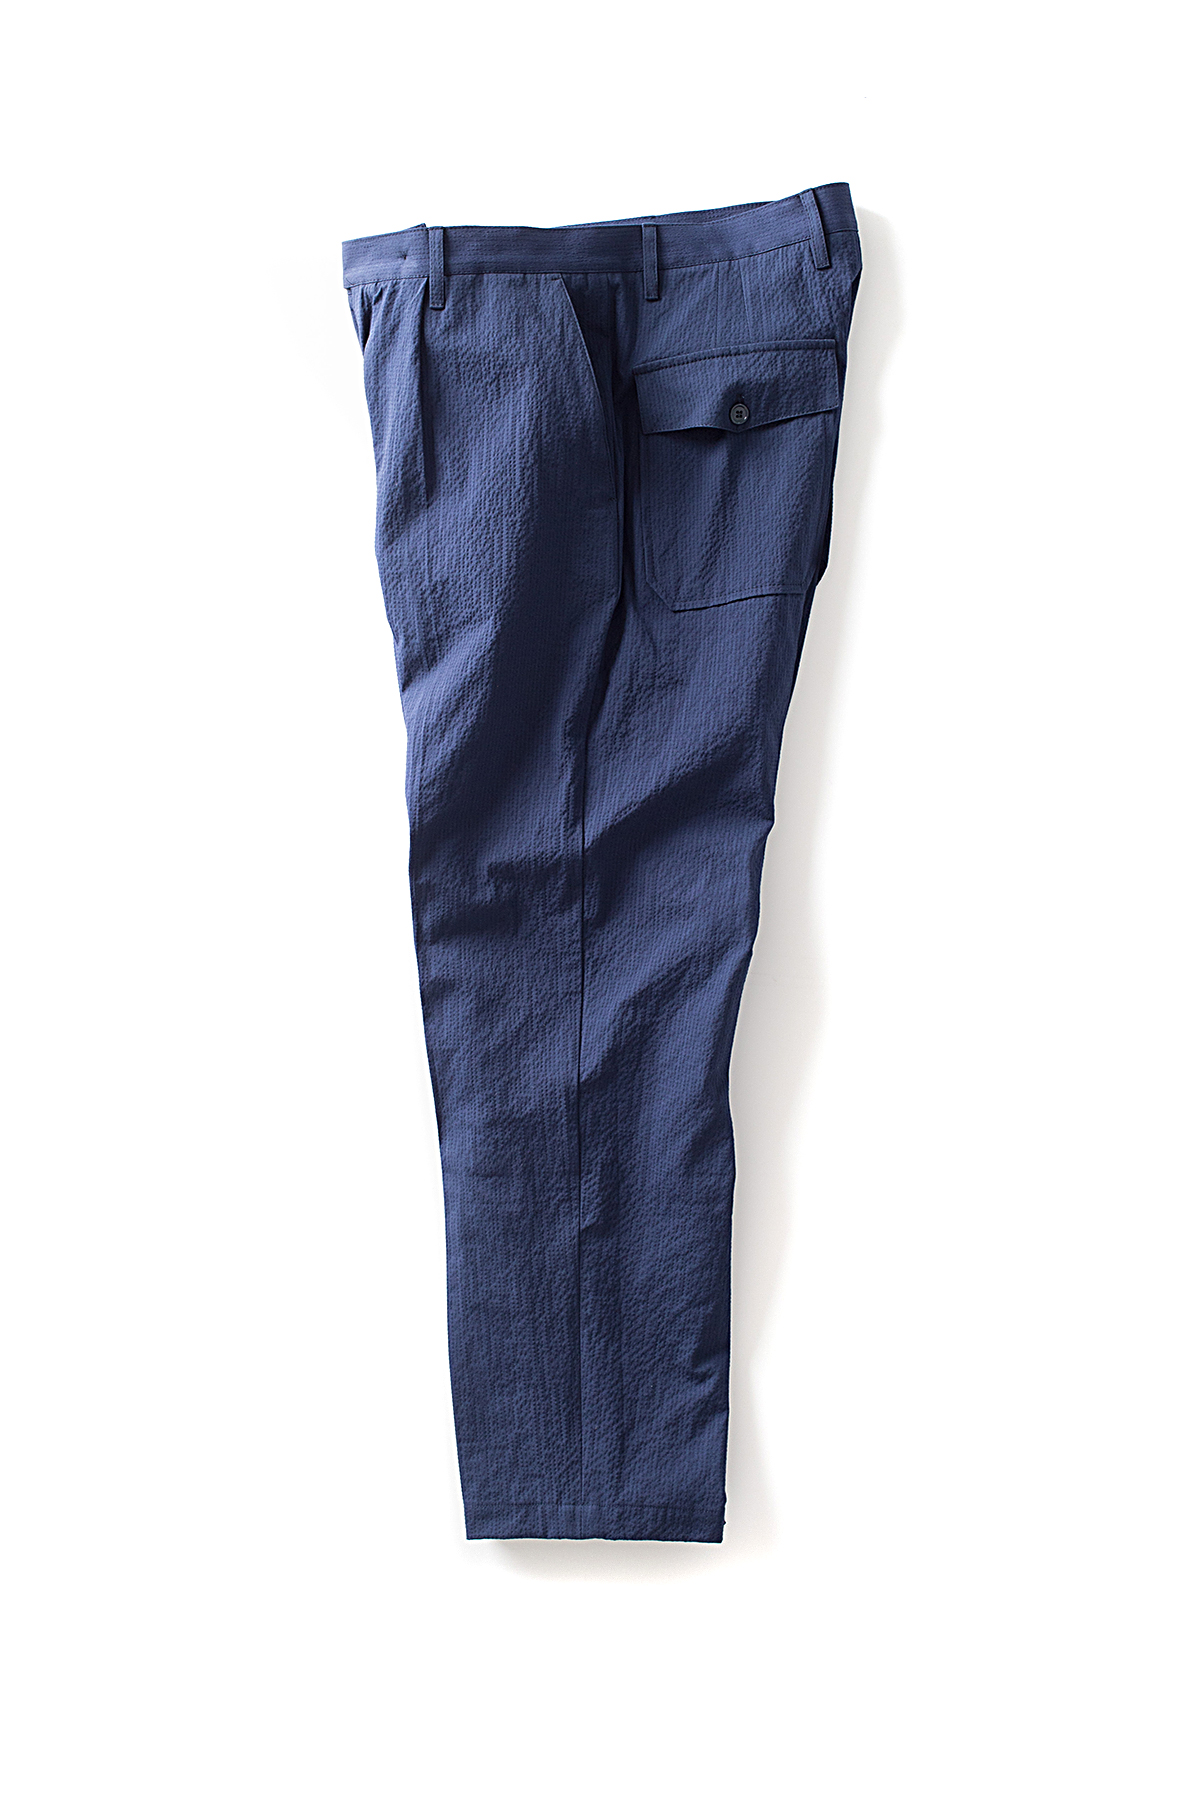 CAMO : Wide Trousers (Seersucker Blue)